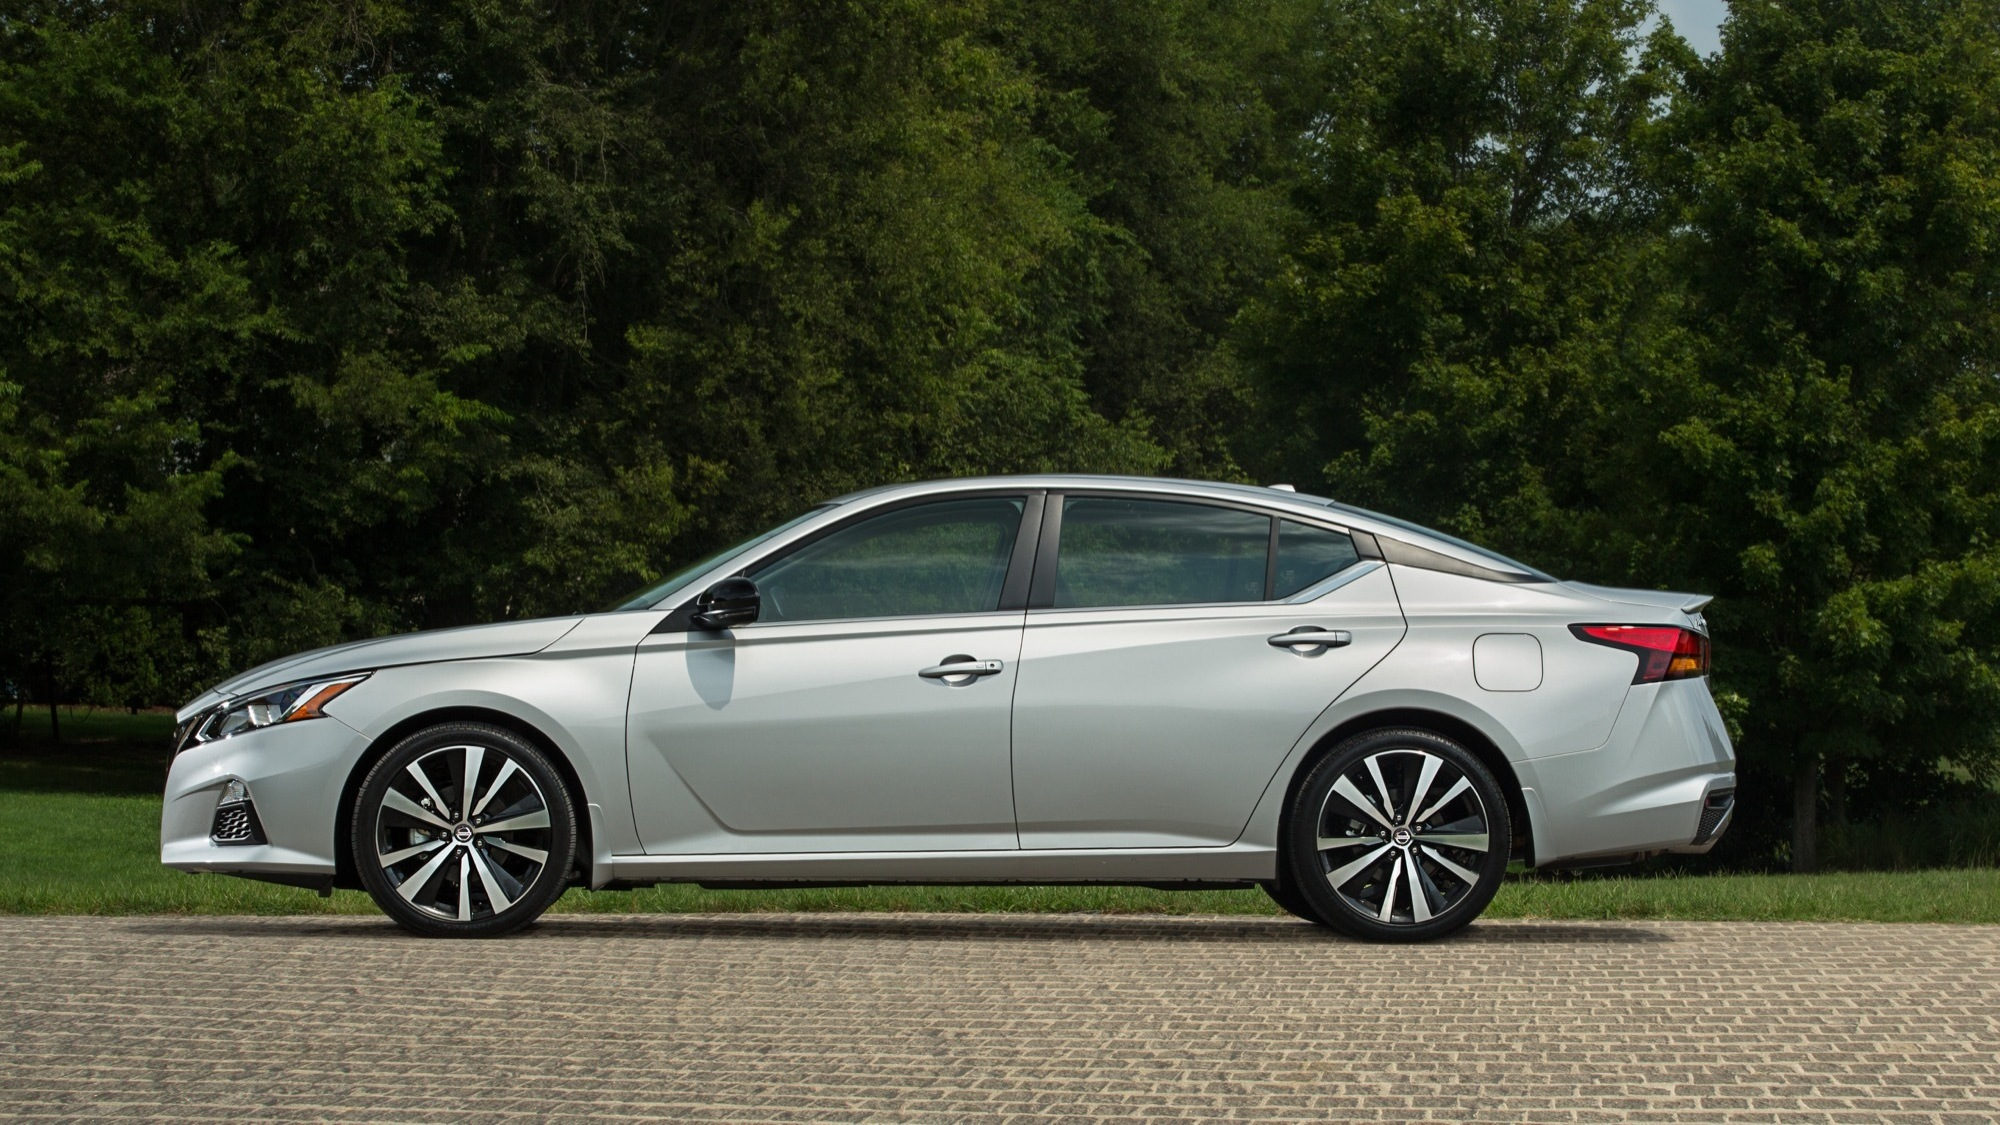 2020 nissan altima price increases  safety features more available